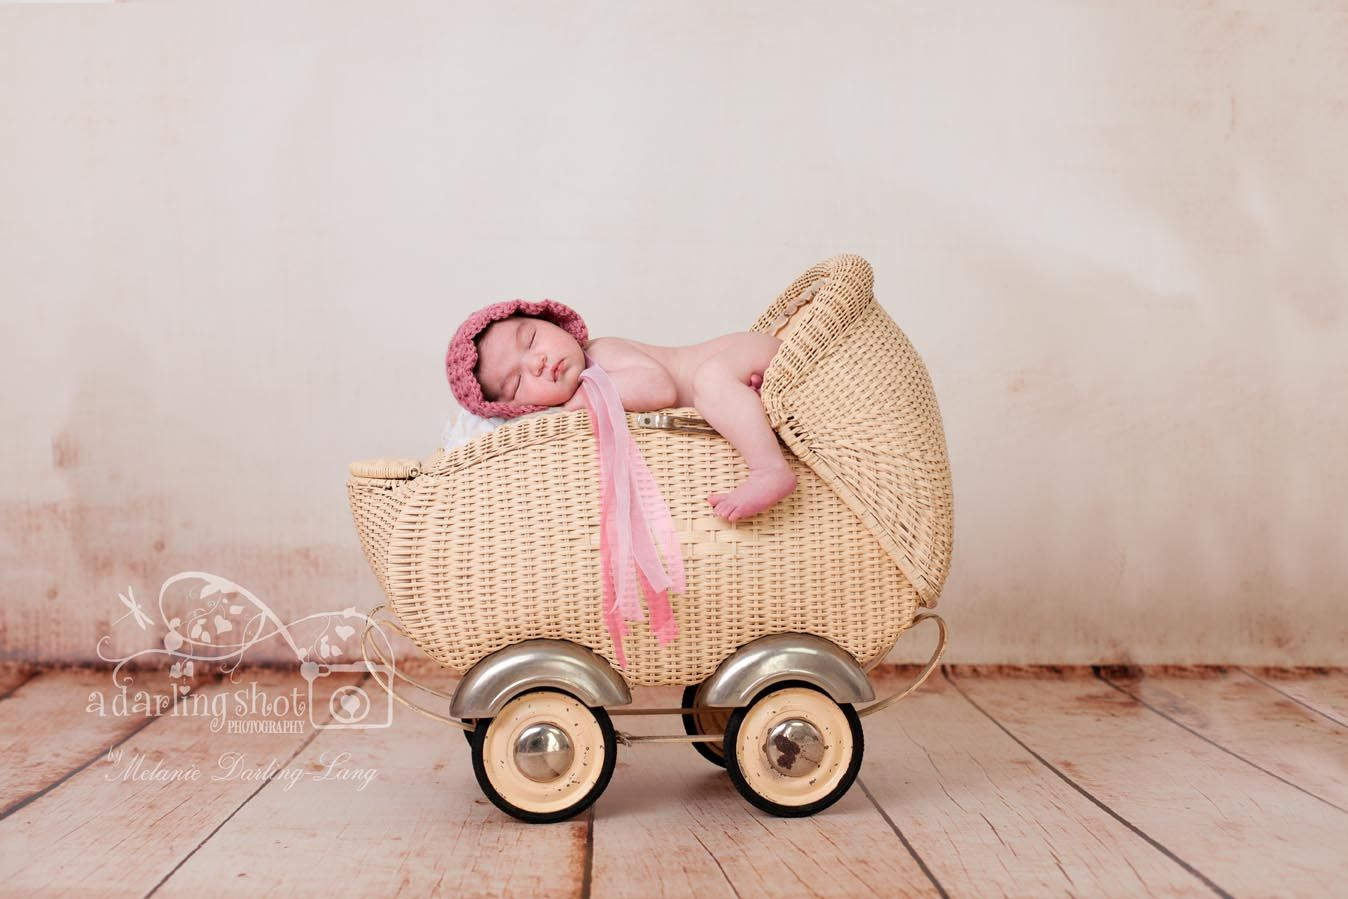 baby photography props ideas jpg 1348 899 f a i t h